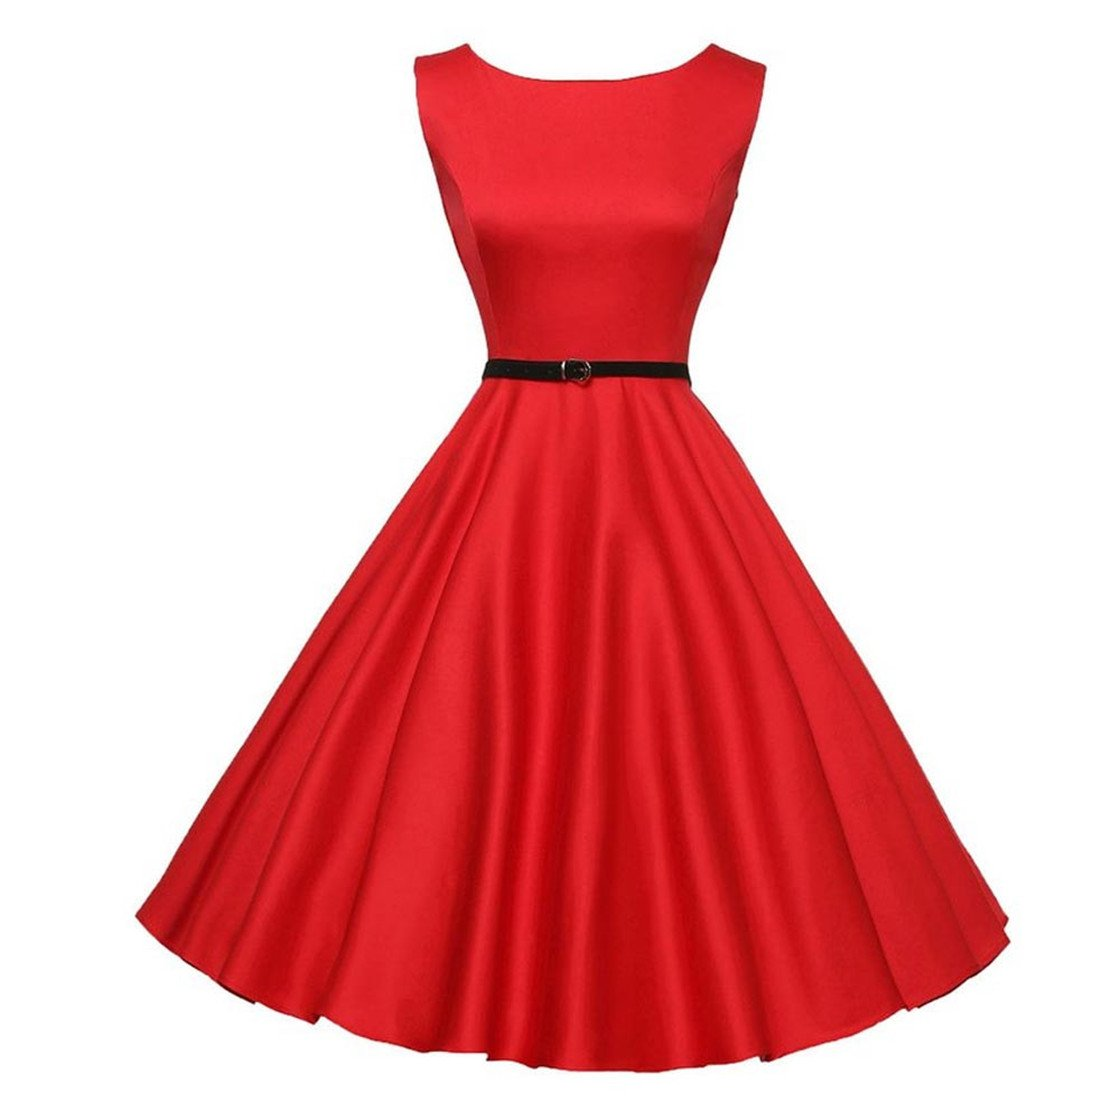 Mose New!!❃❤️❃! Dresses Women Vintage Bodycon Sleeveless Casual Retro Evening Party Tops Prom Swing Vintage Hepburn Style Waist Fashion Dress (S, Red)